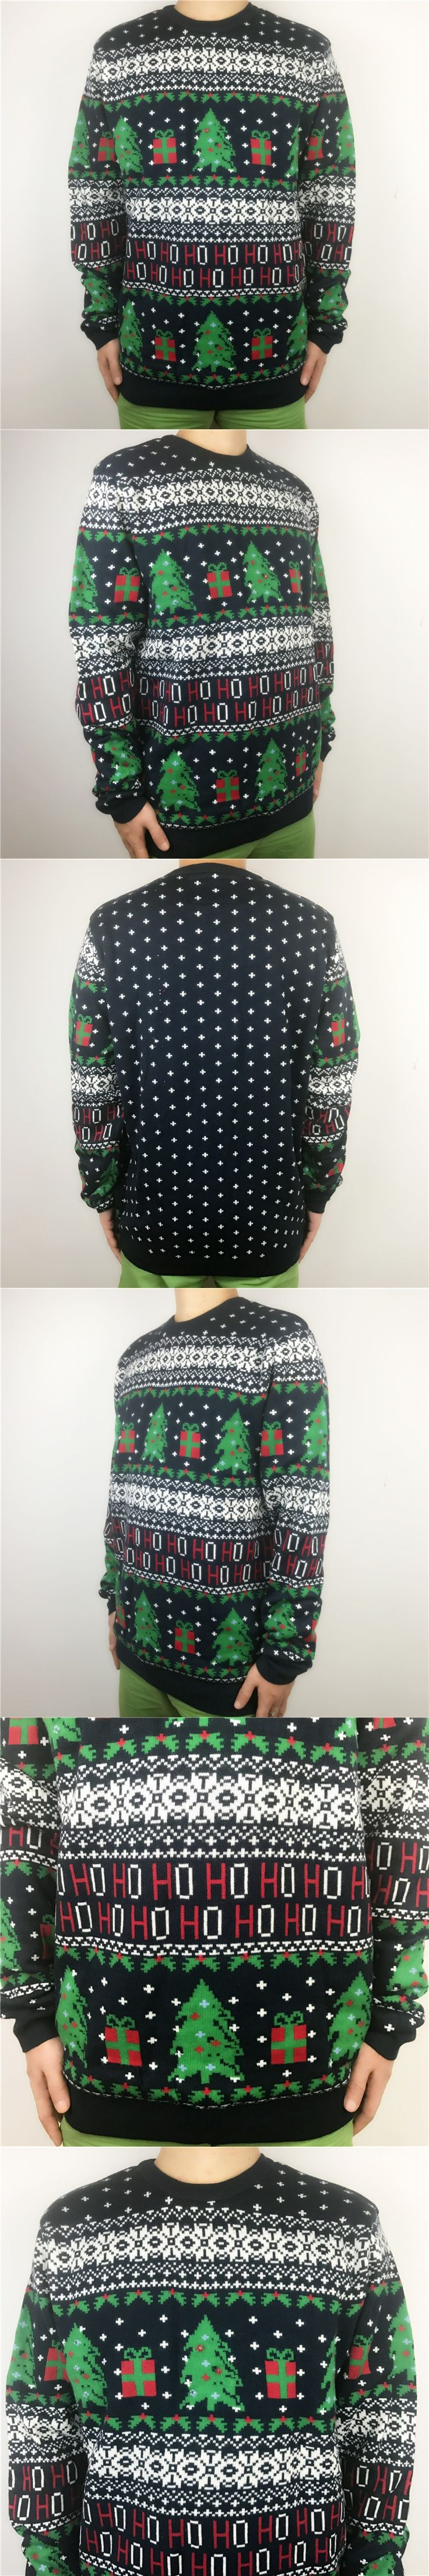 Funny Light Up Knitted Ugly Christmas Sweaters for Men Oversized Xmas Pullover Jumpers Deep Blue